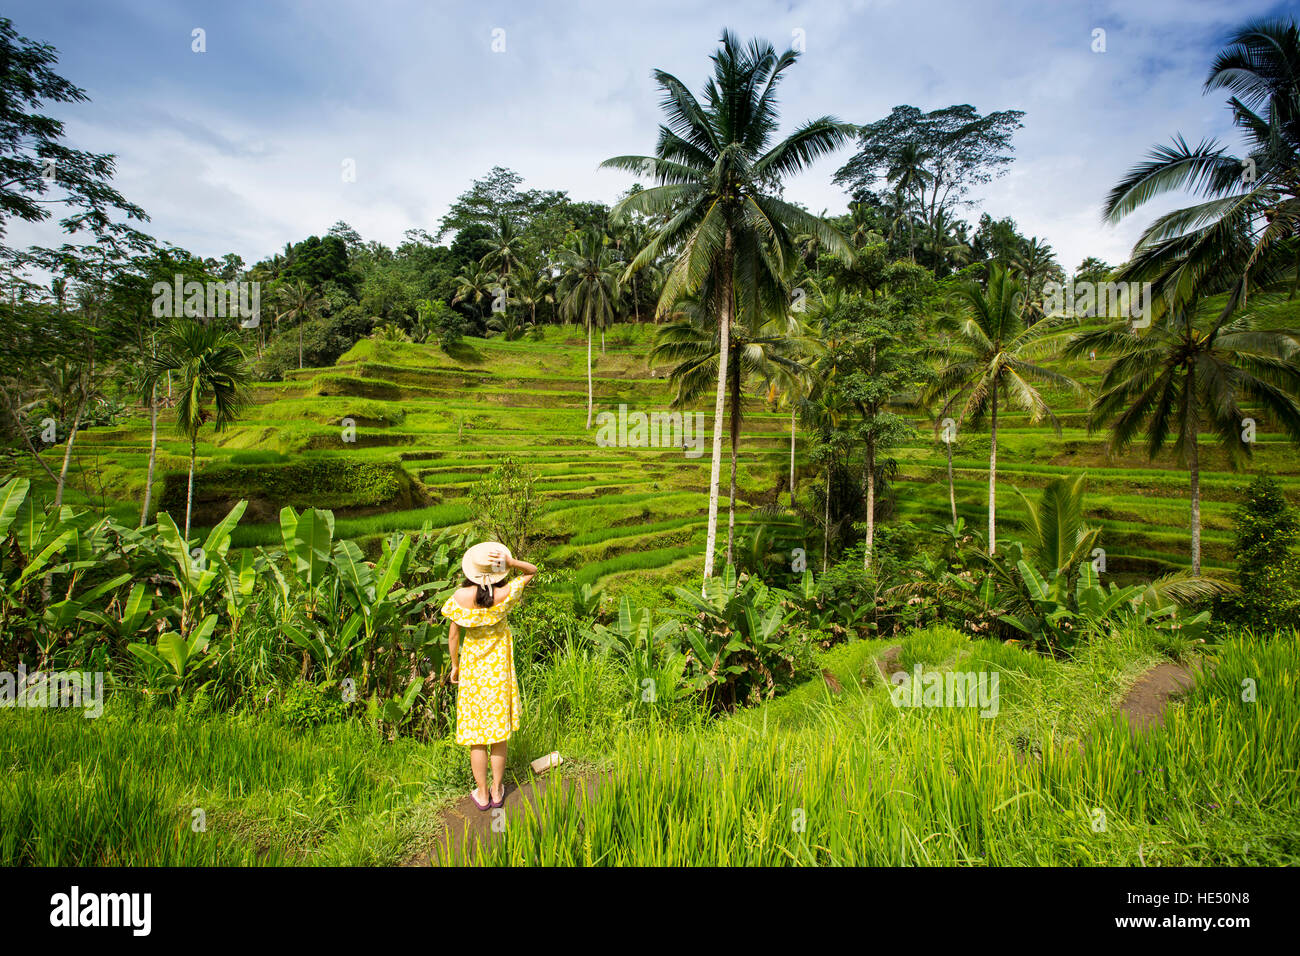 young girl in Tegallalang rice terraces, Bali - Stock Image